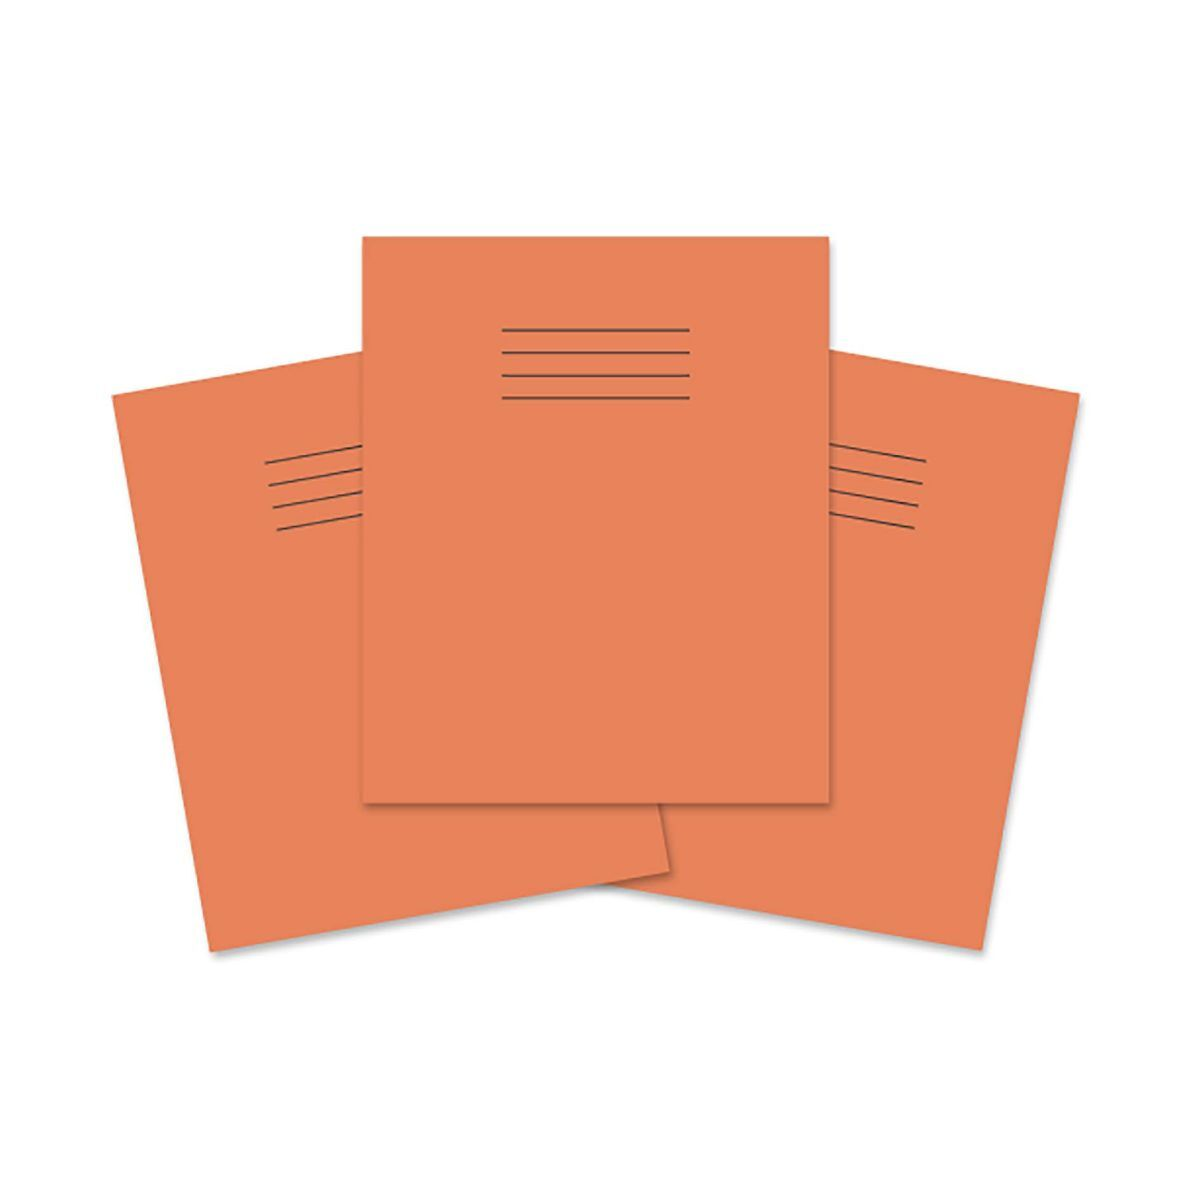 Rhino Exercise Book 8 inch x 6.5 Inch 48 Pages 8mm Ruled and Margin Pack of 100 Orange